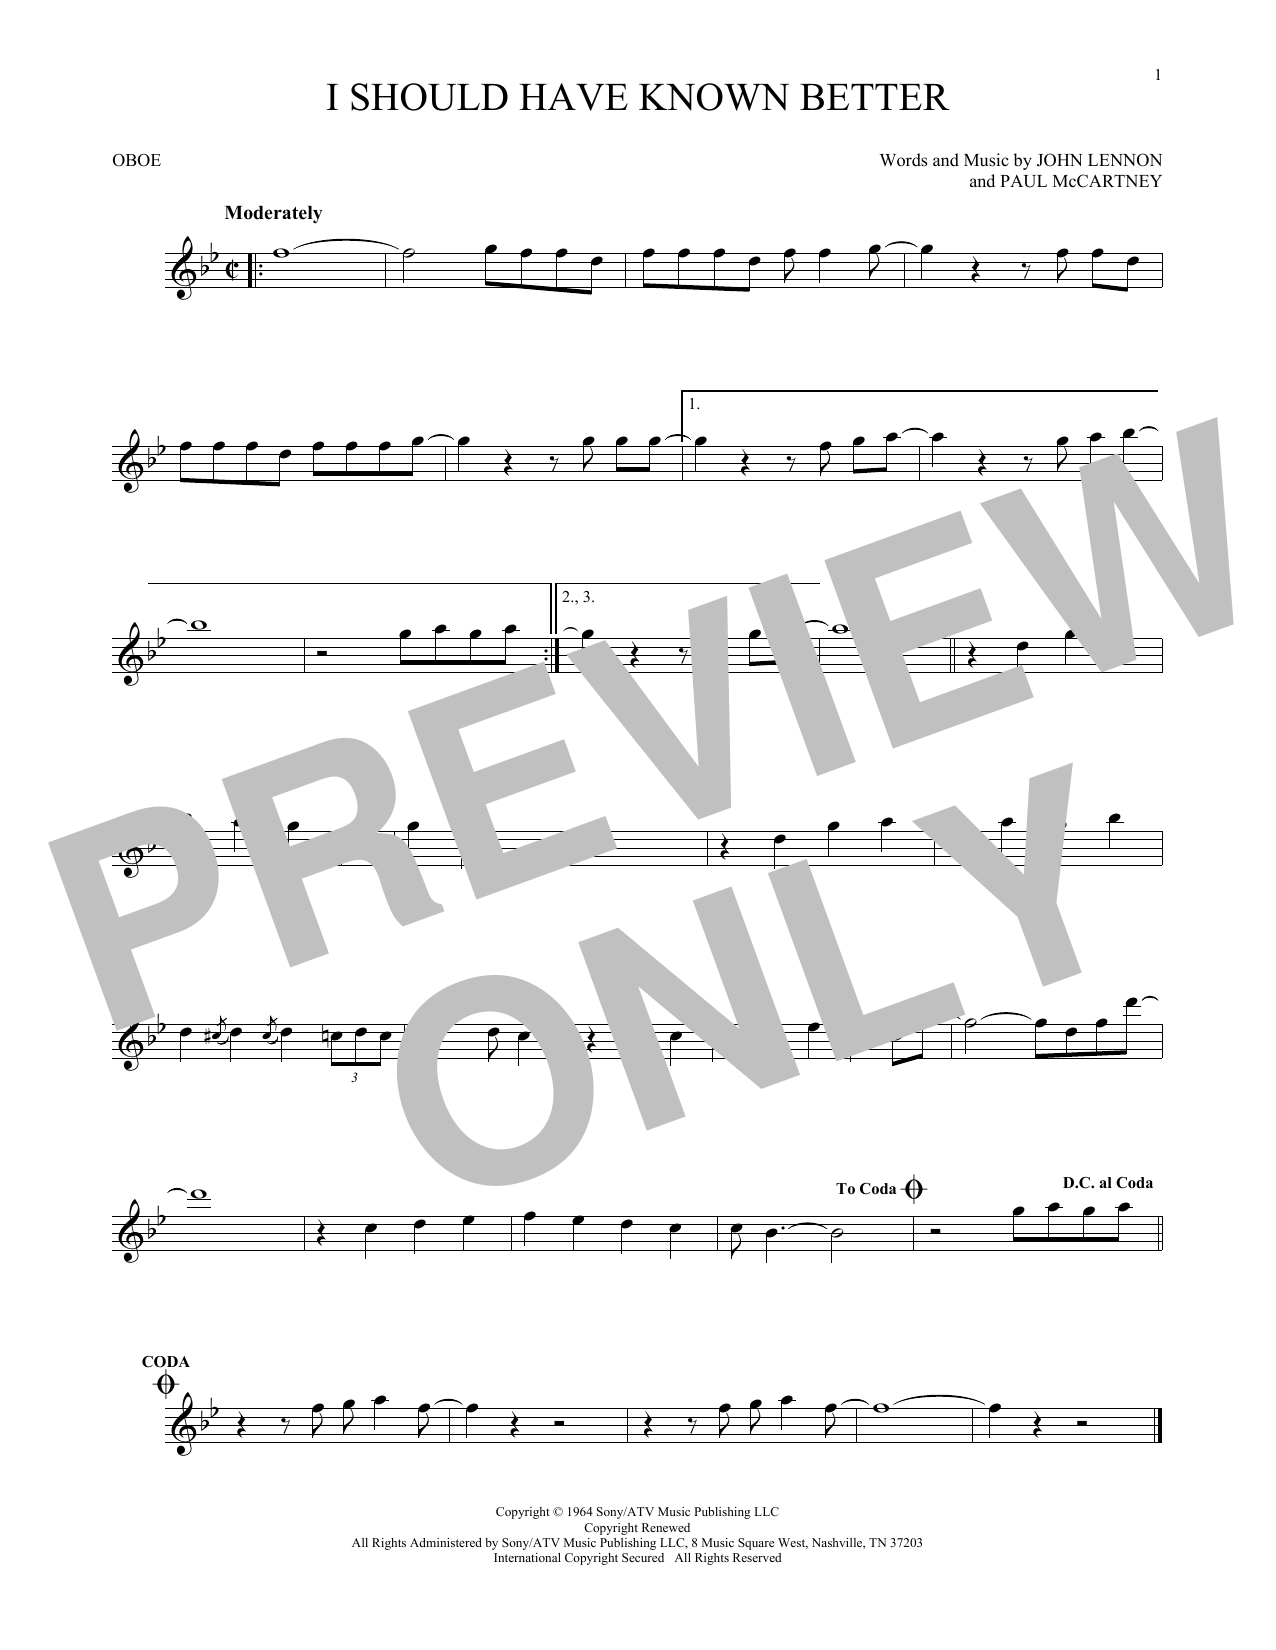 I Should Have Known Better (Oboe Solo)